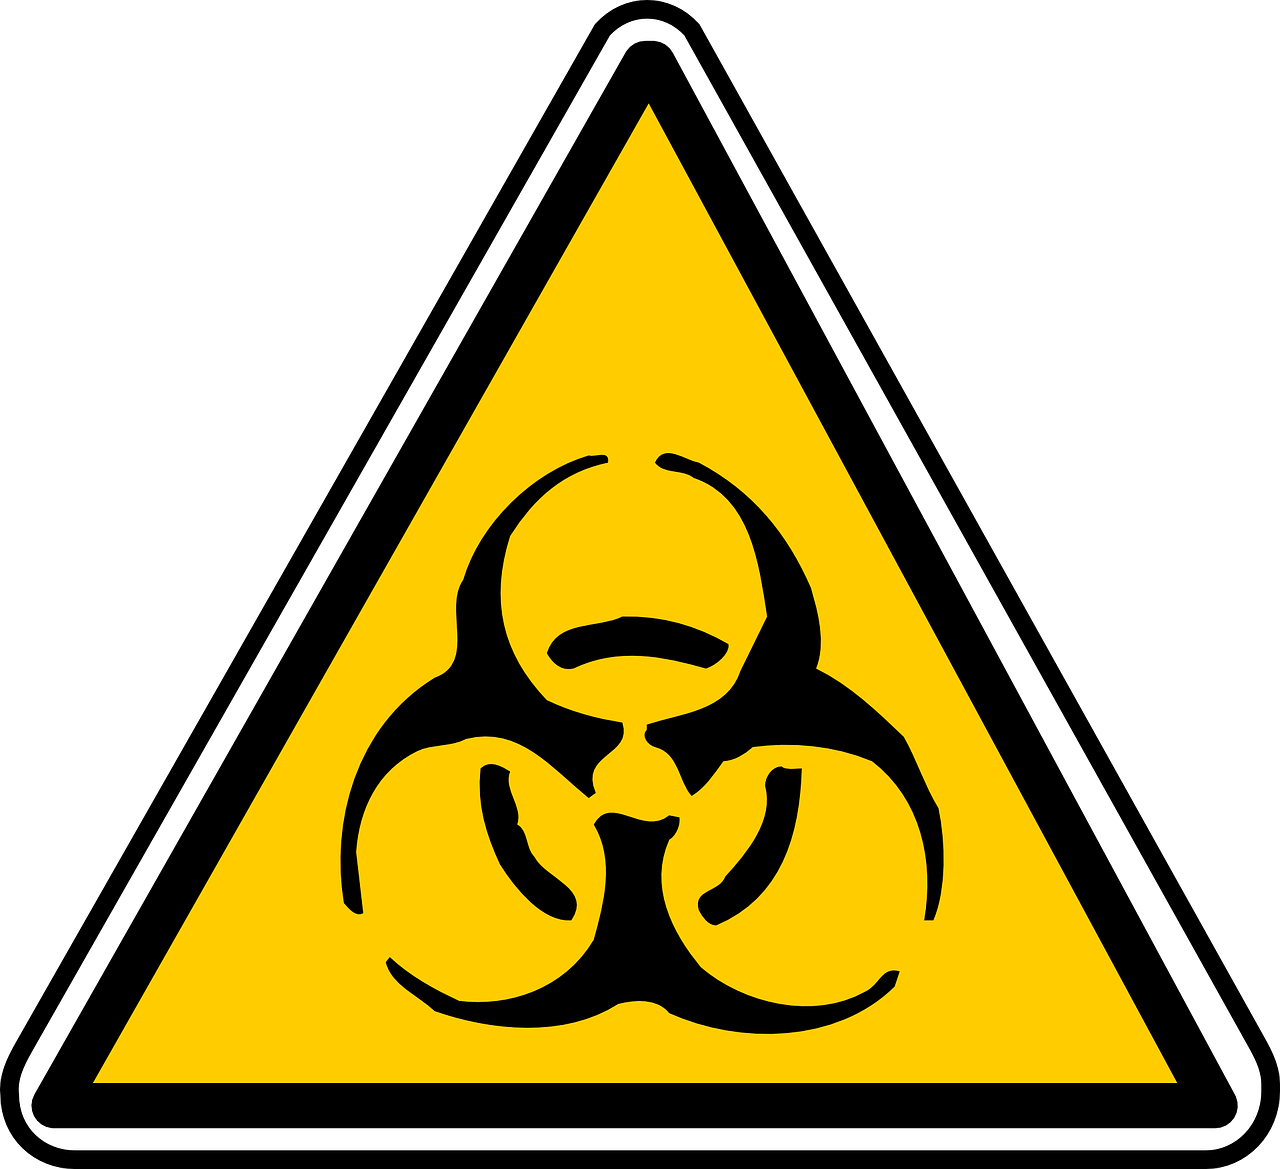 biohazard-toxin-chemical